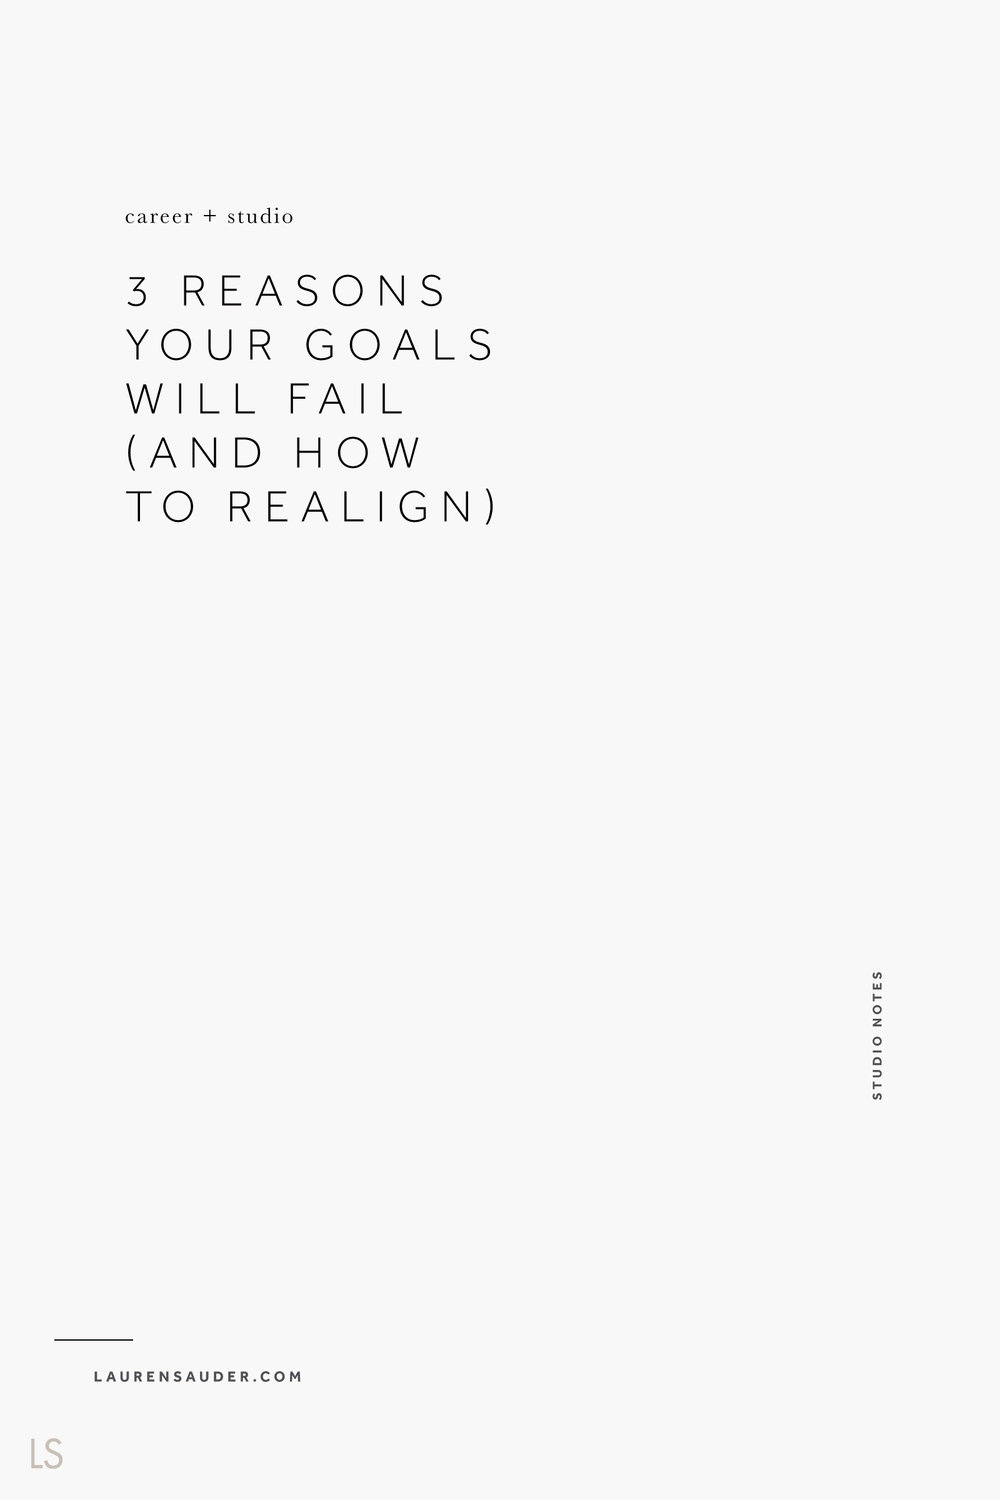 3 Reasons Your Goals Will Fail (and how to realign) Lauren Sauder #goals #clarity goal workbook, gaining clarity, habits, creative